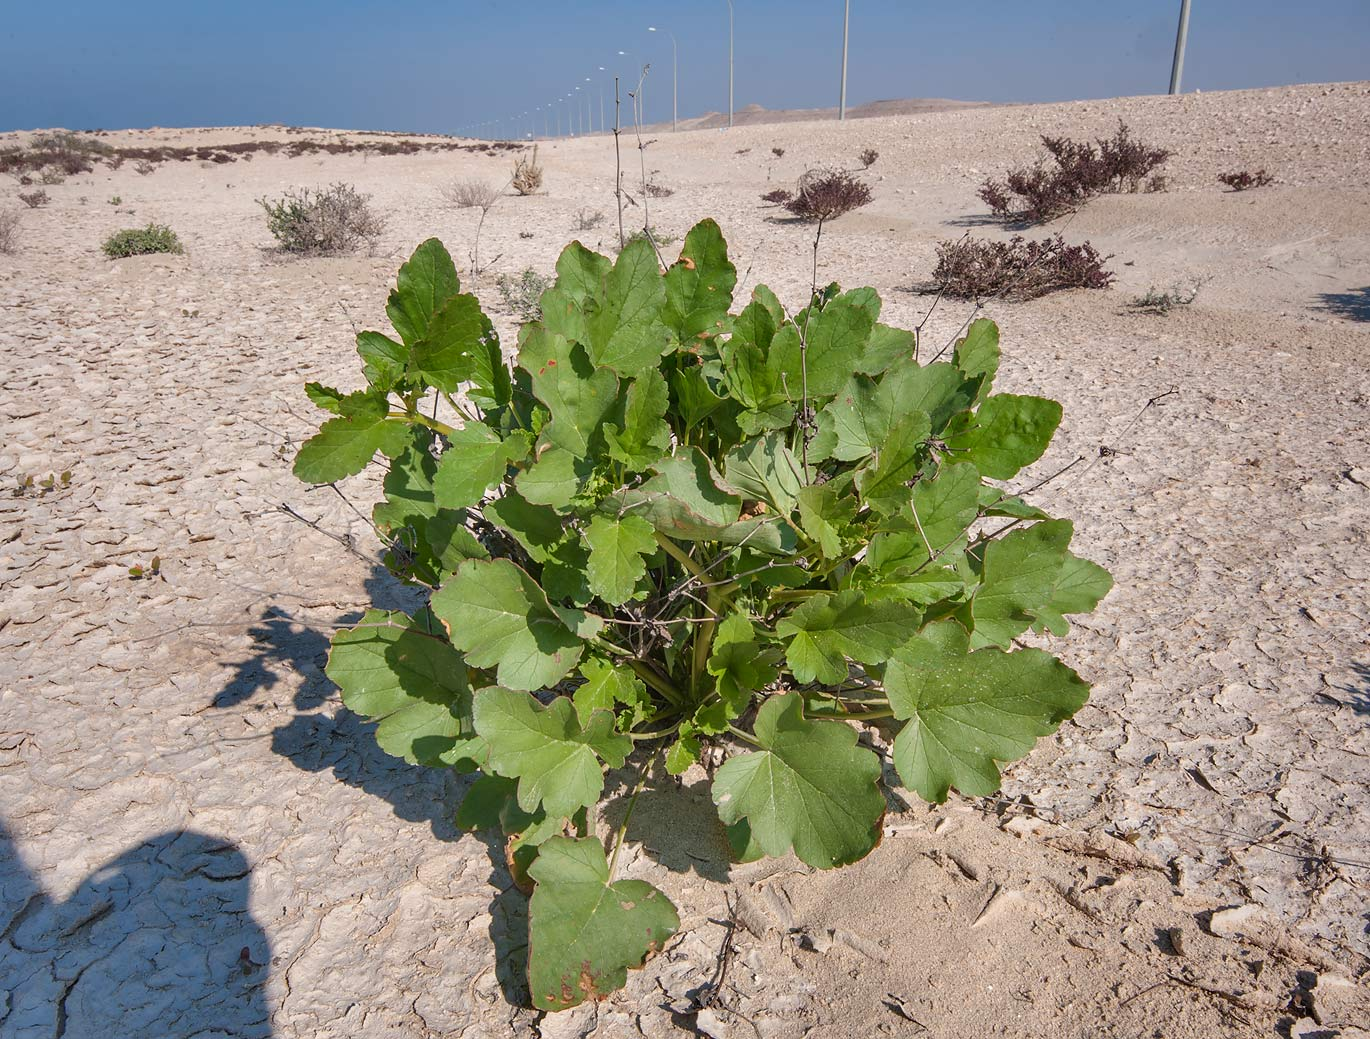 Plant of storkbill (Erodium glaucophyllum) on roadside in Dukhan. Qatar